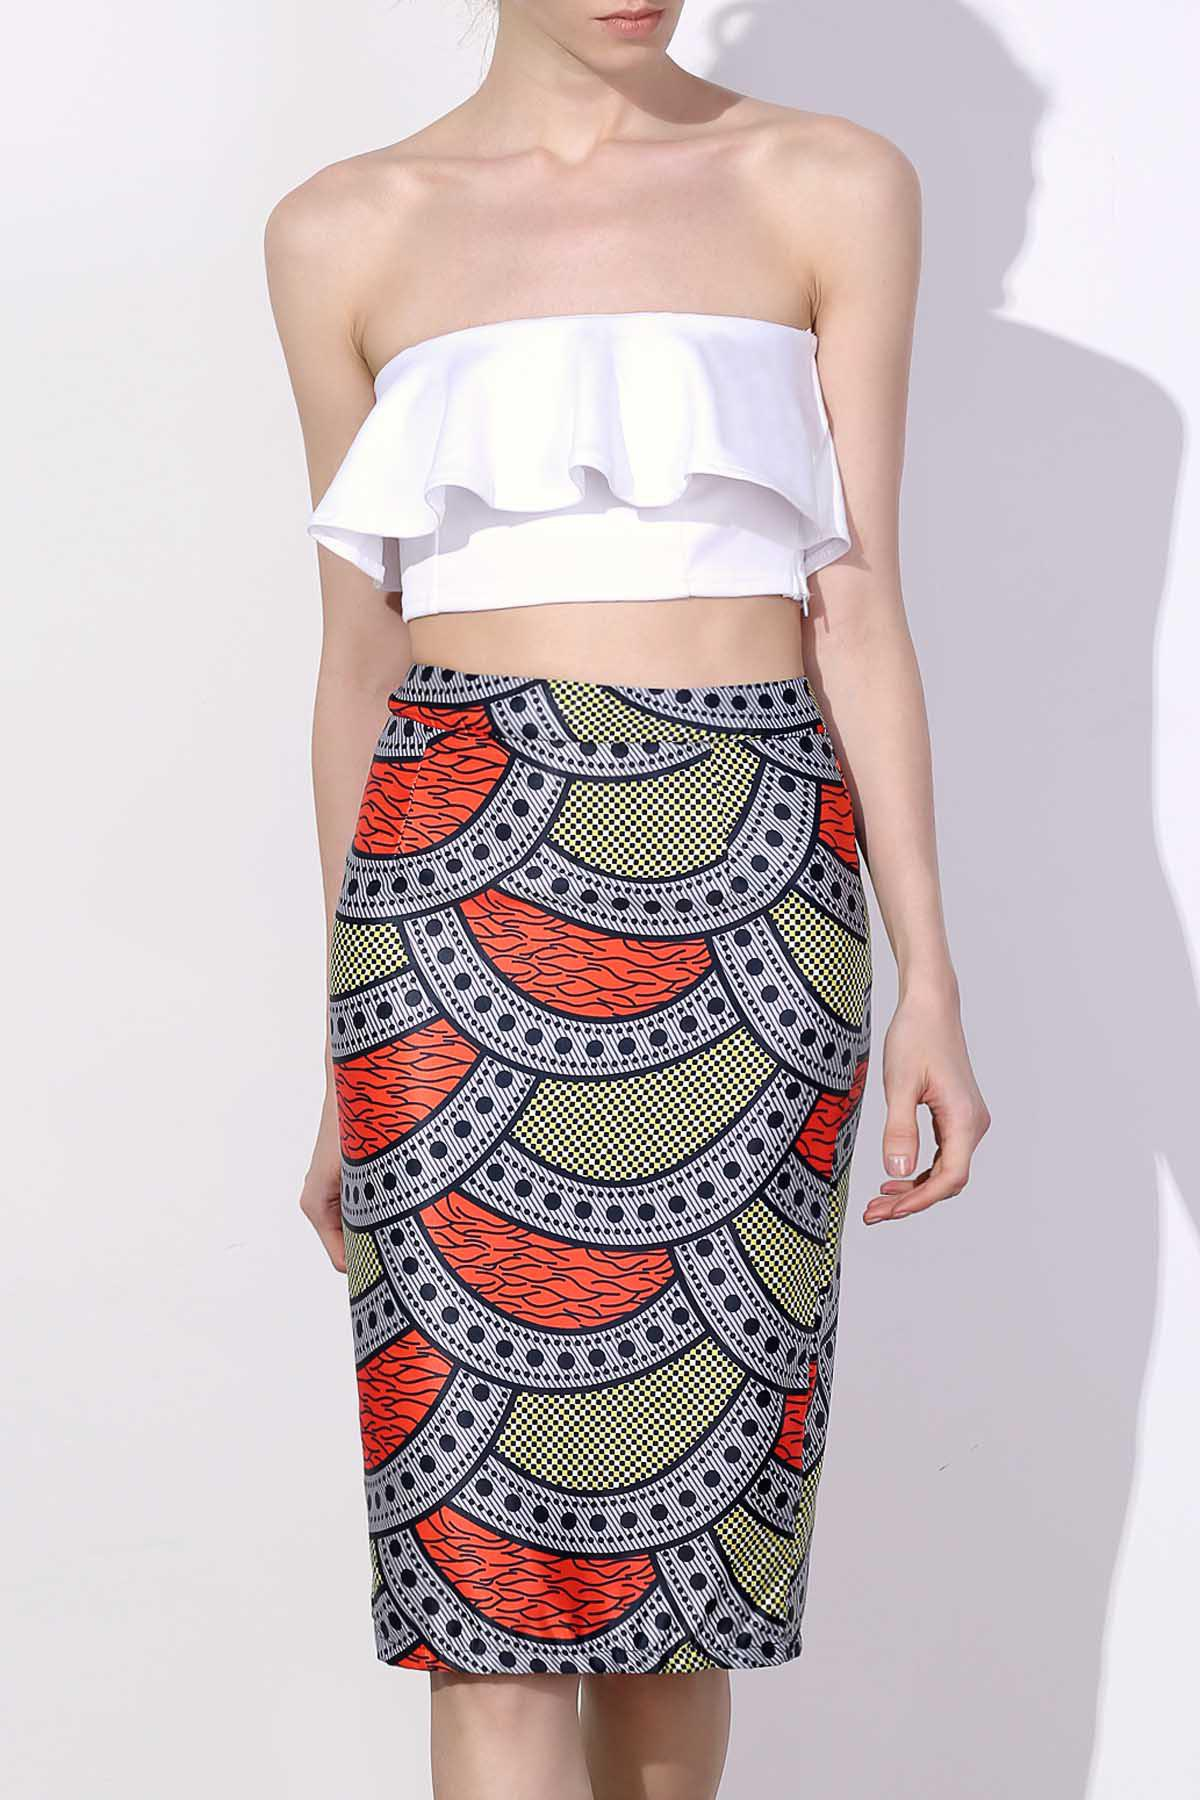 Stylish High-Waisted Bodycon Printed Women's Skirt - COLORMIX S